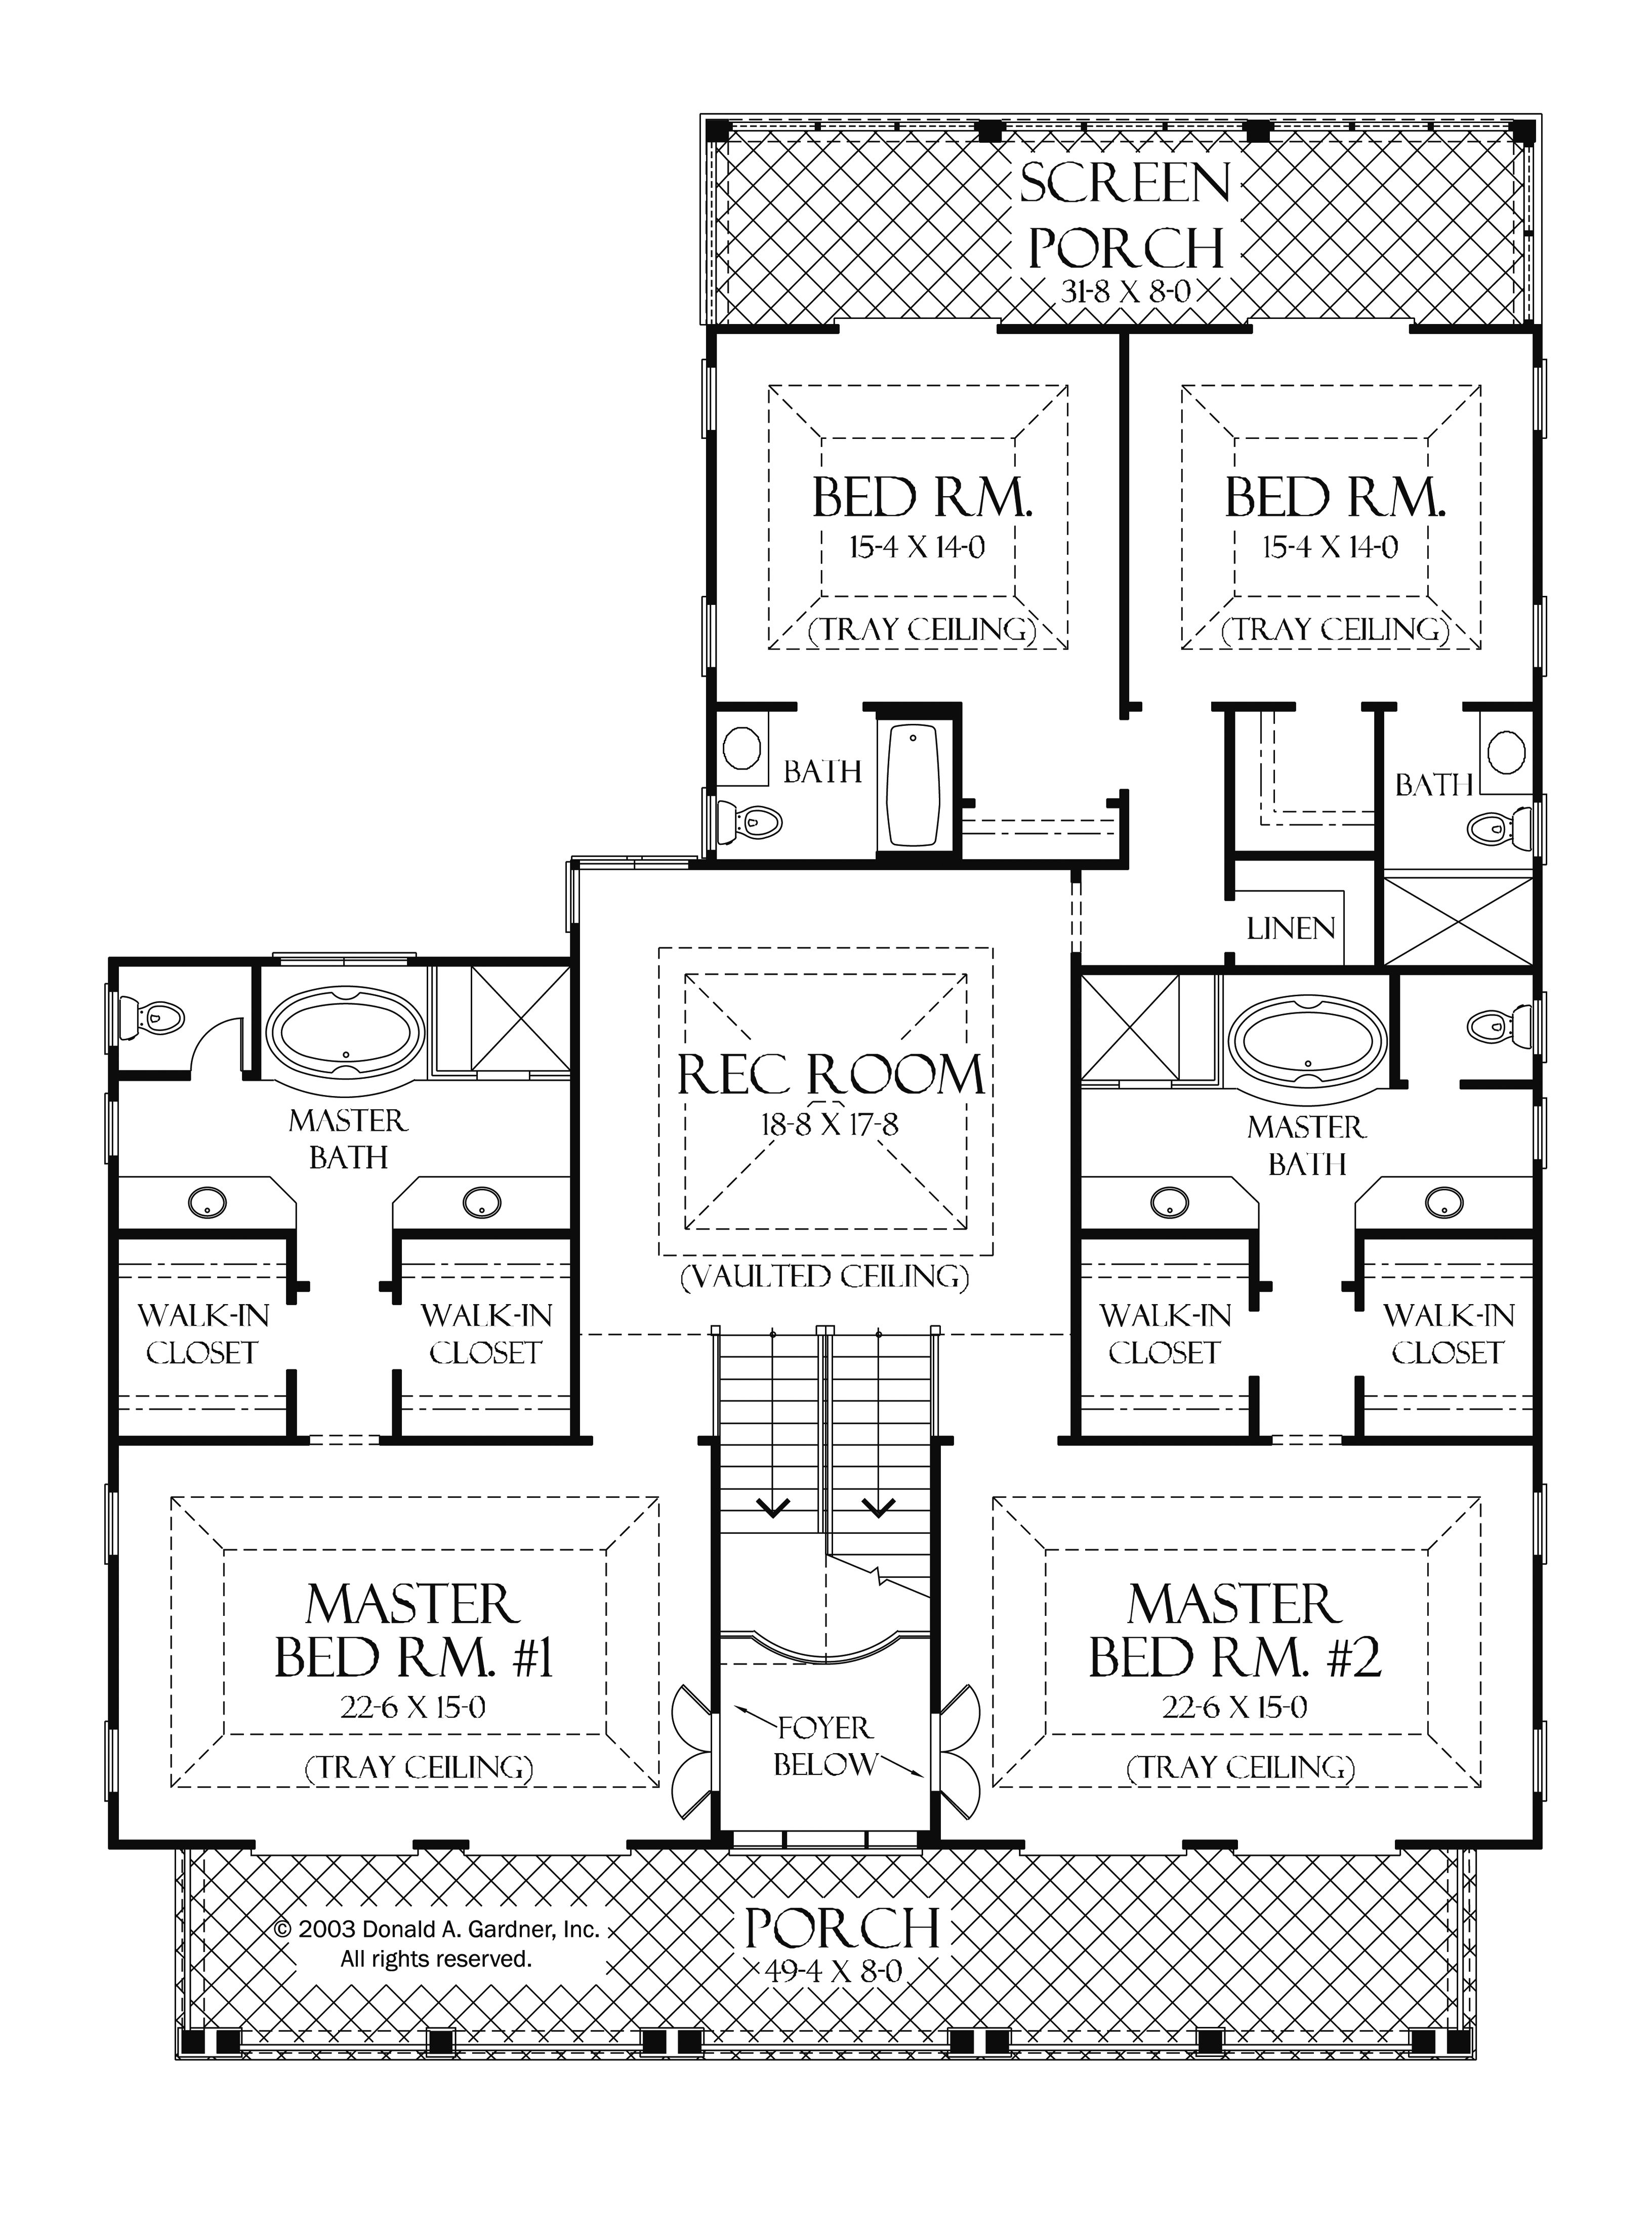 Amazing house plans with master suites luxury and bedroom floor plansbackgrounds also karen brockkm on pinterest rh